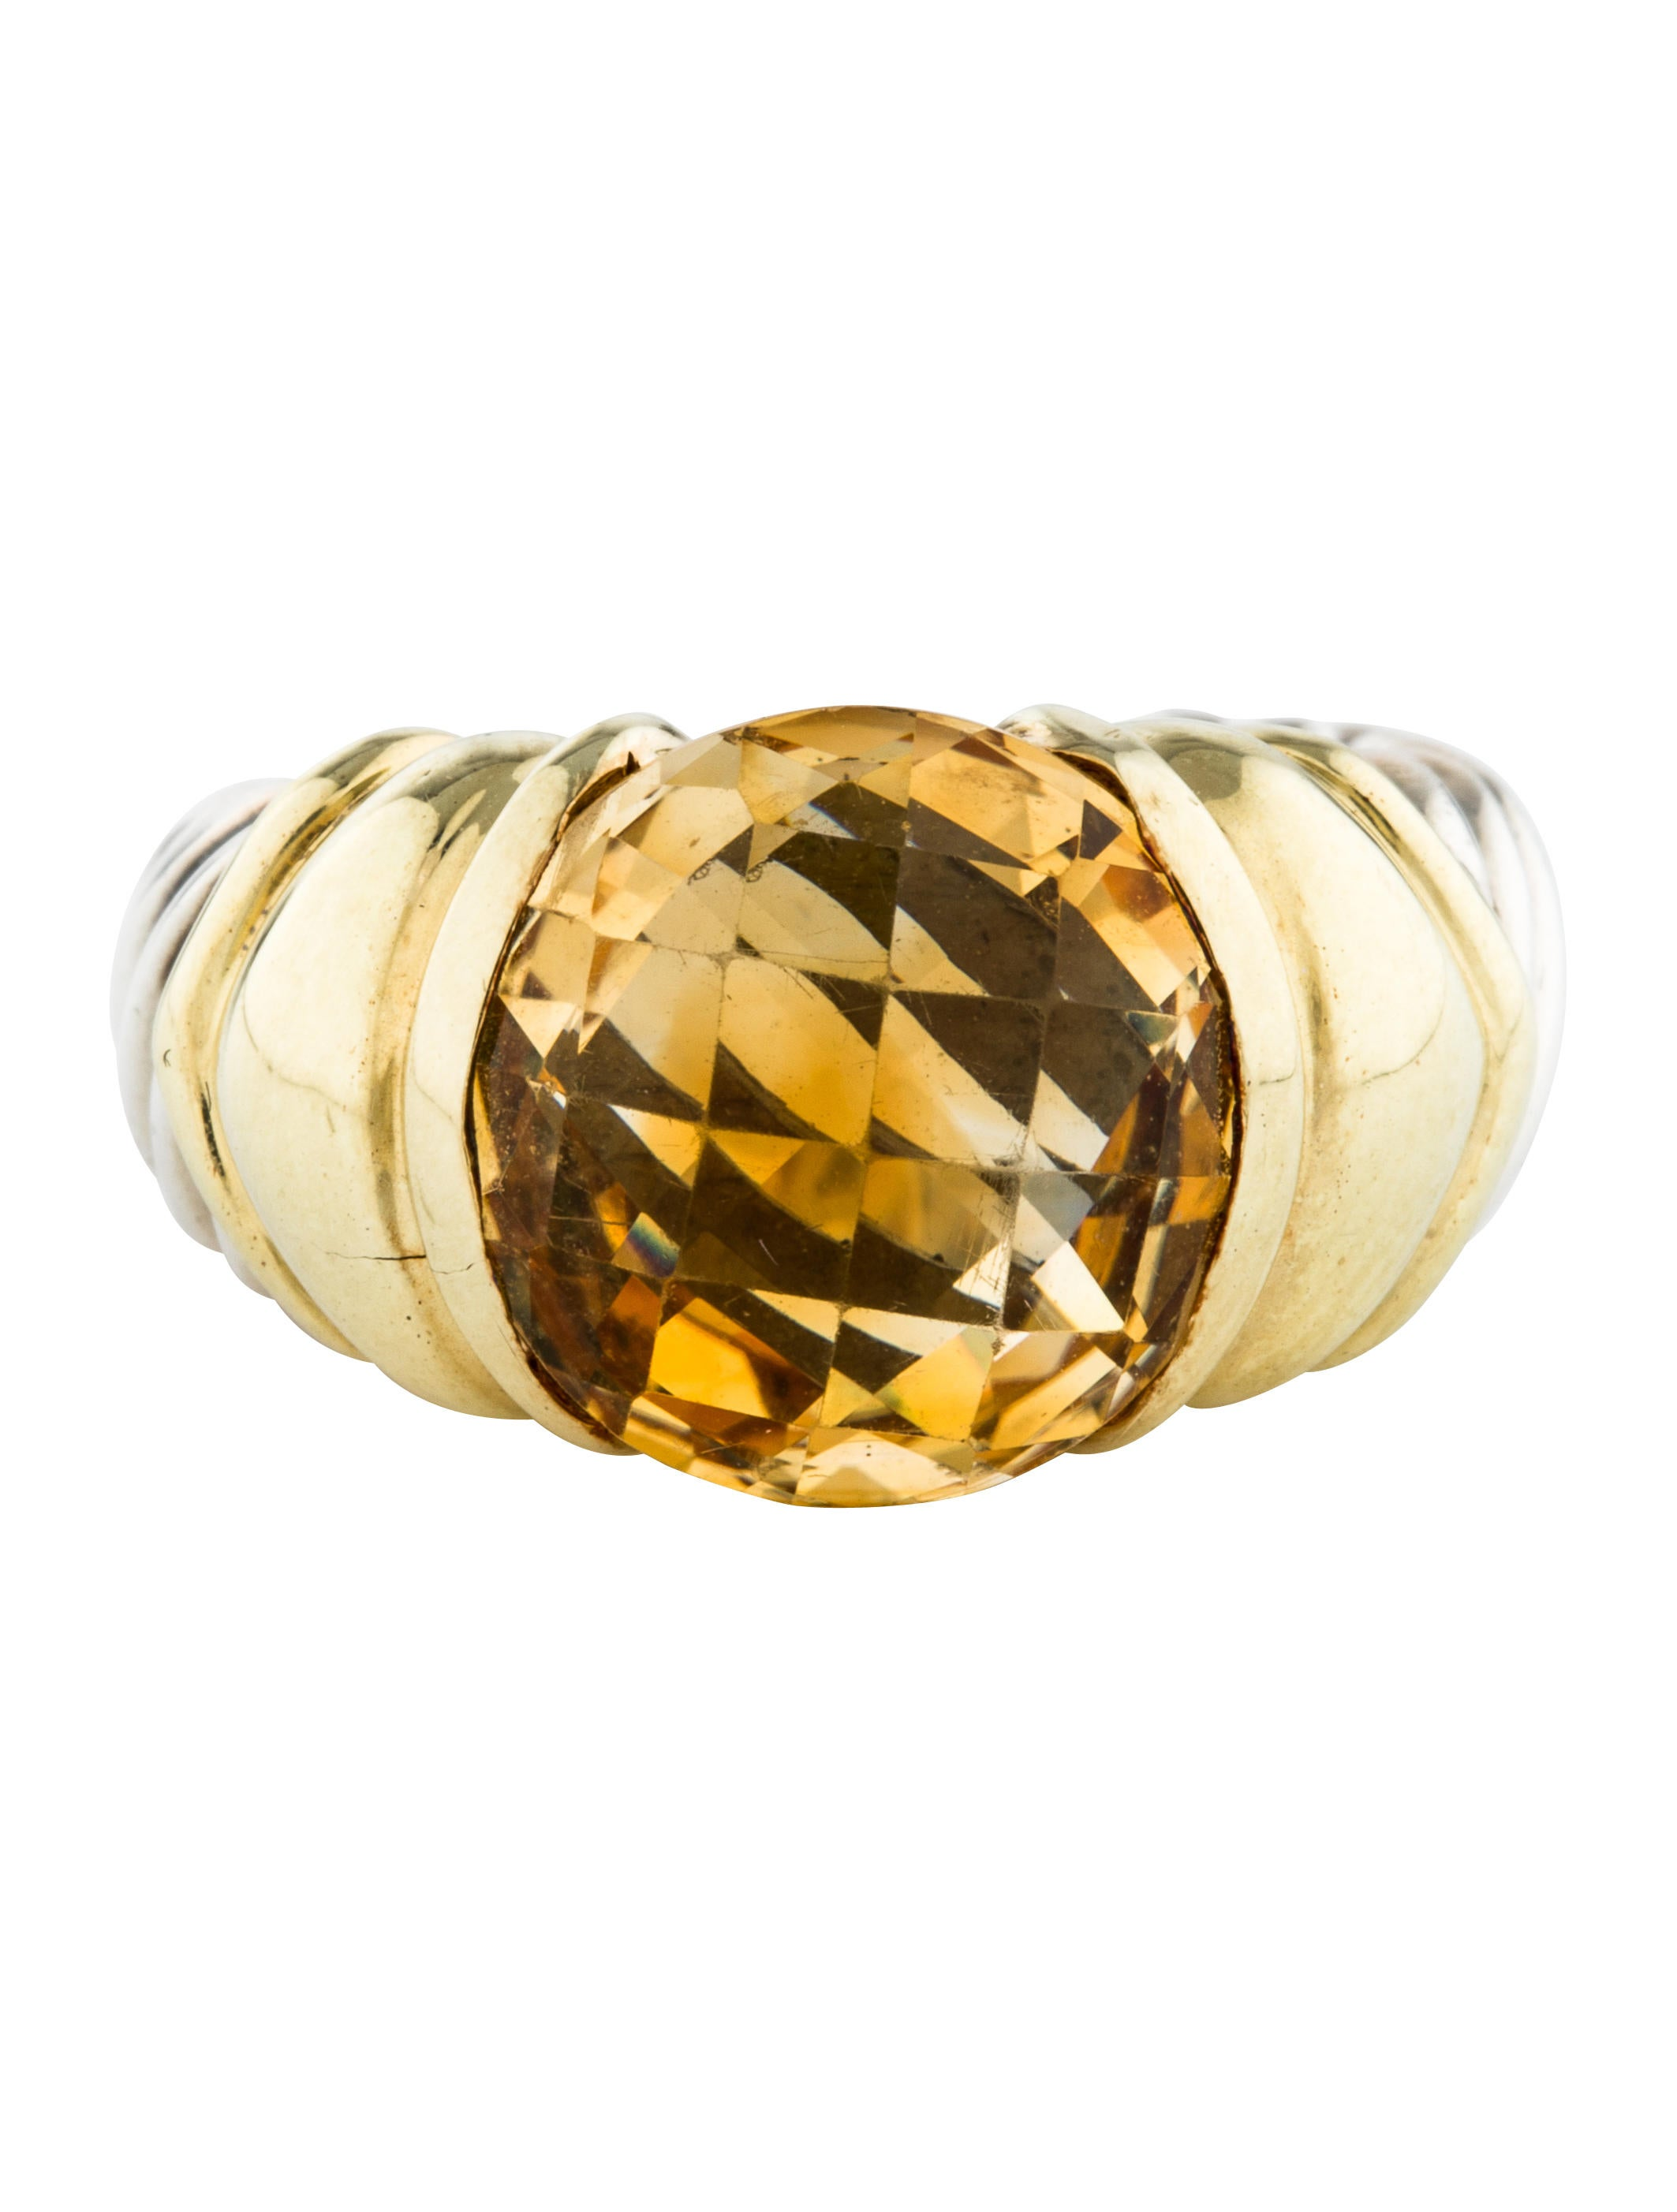 david yurman citrine cocktail ring rings dvy44064